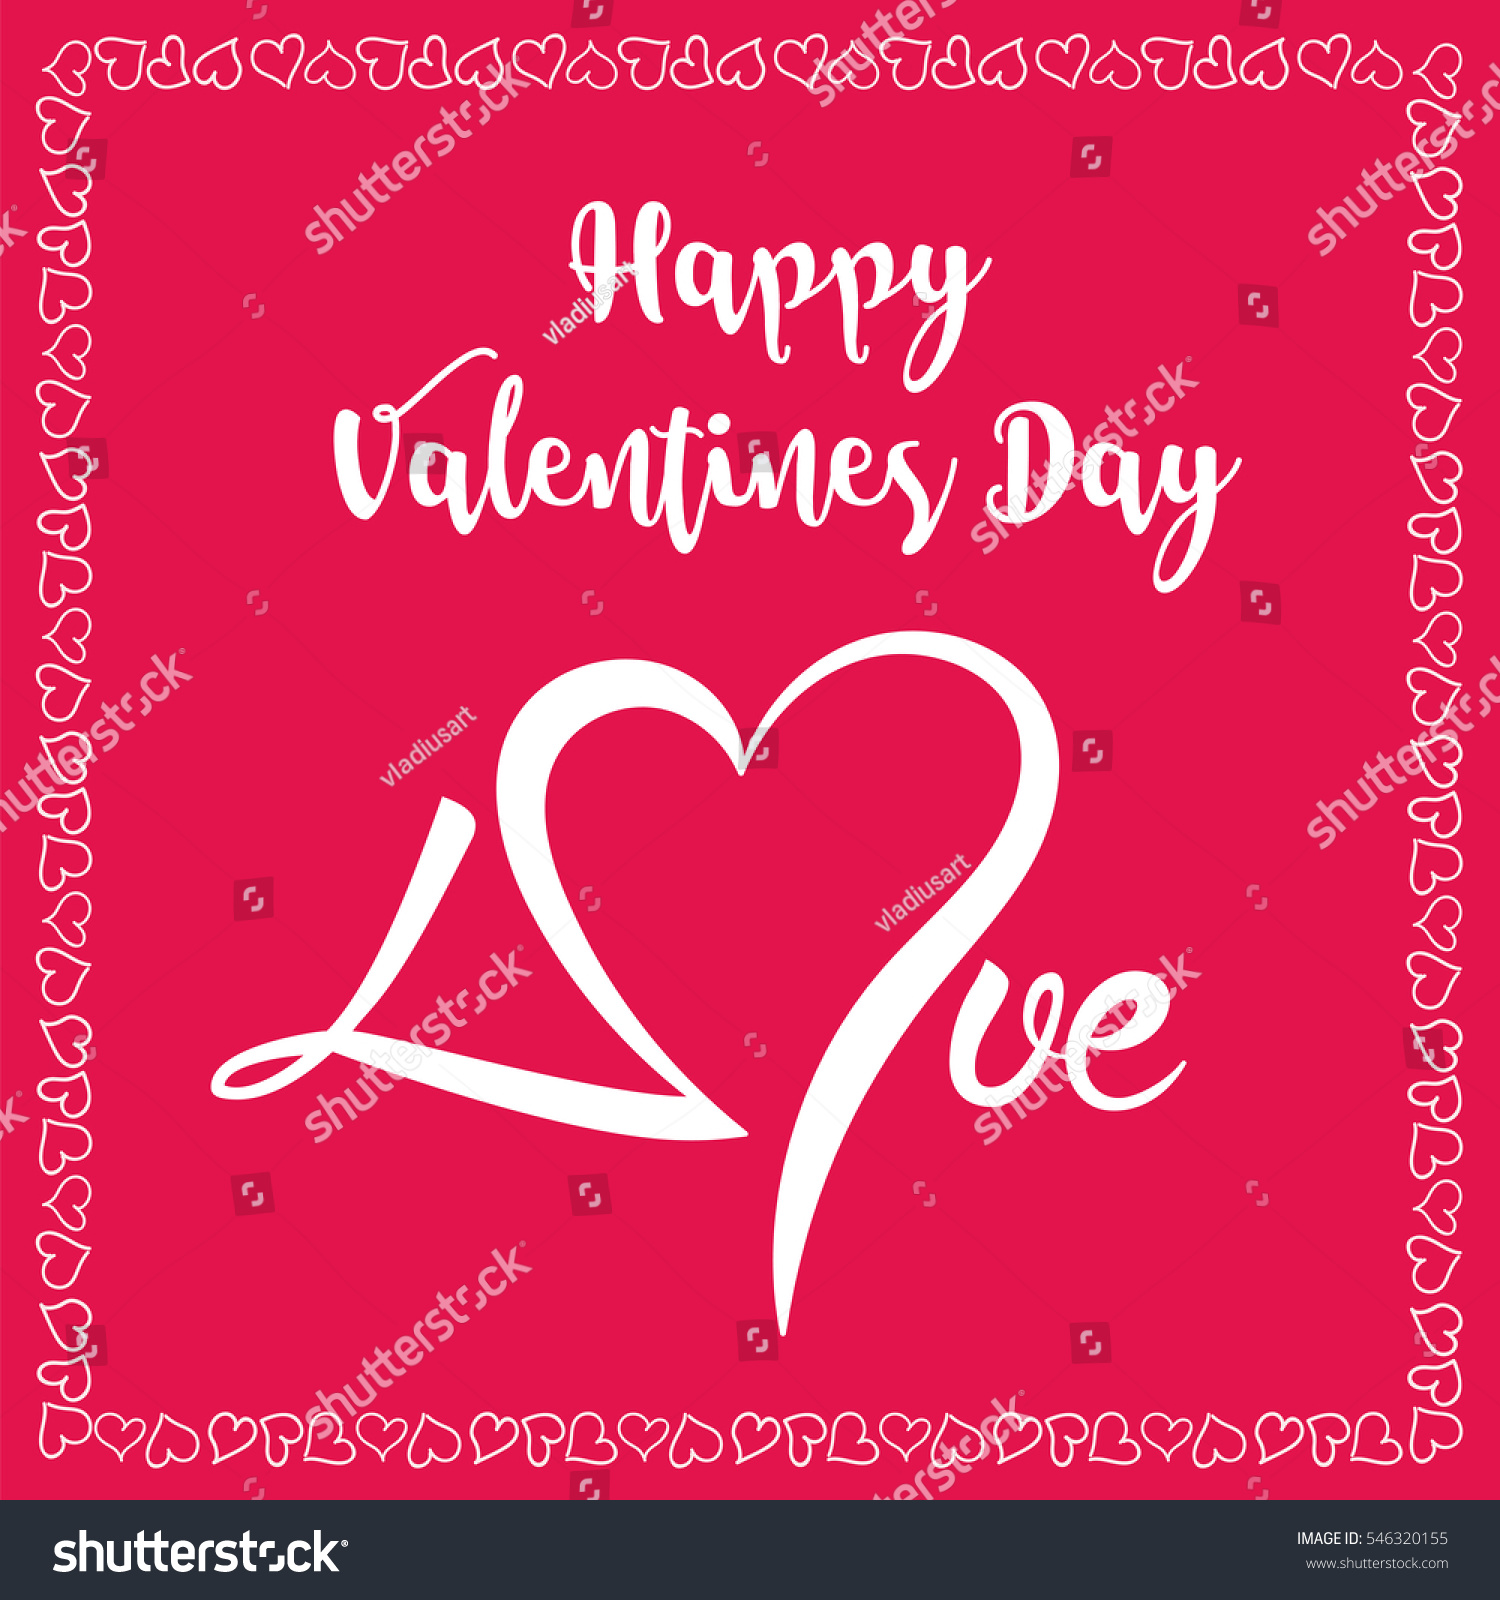 Happy Valentines Day Sign. On Red Background With Hearts In Border